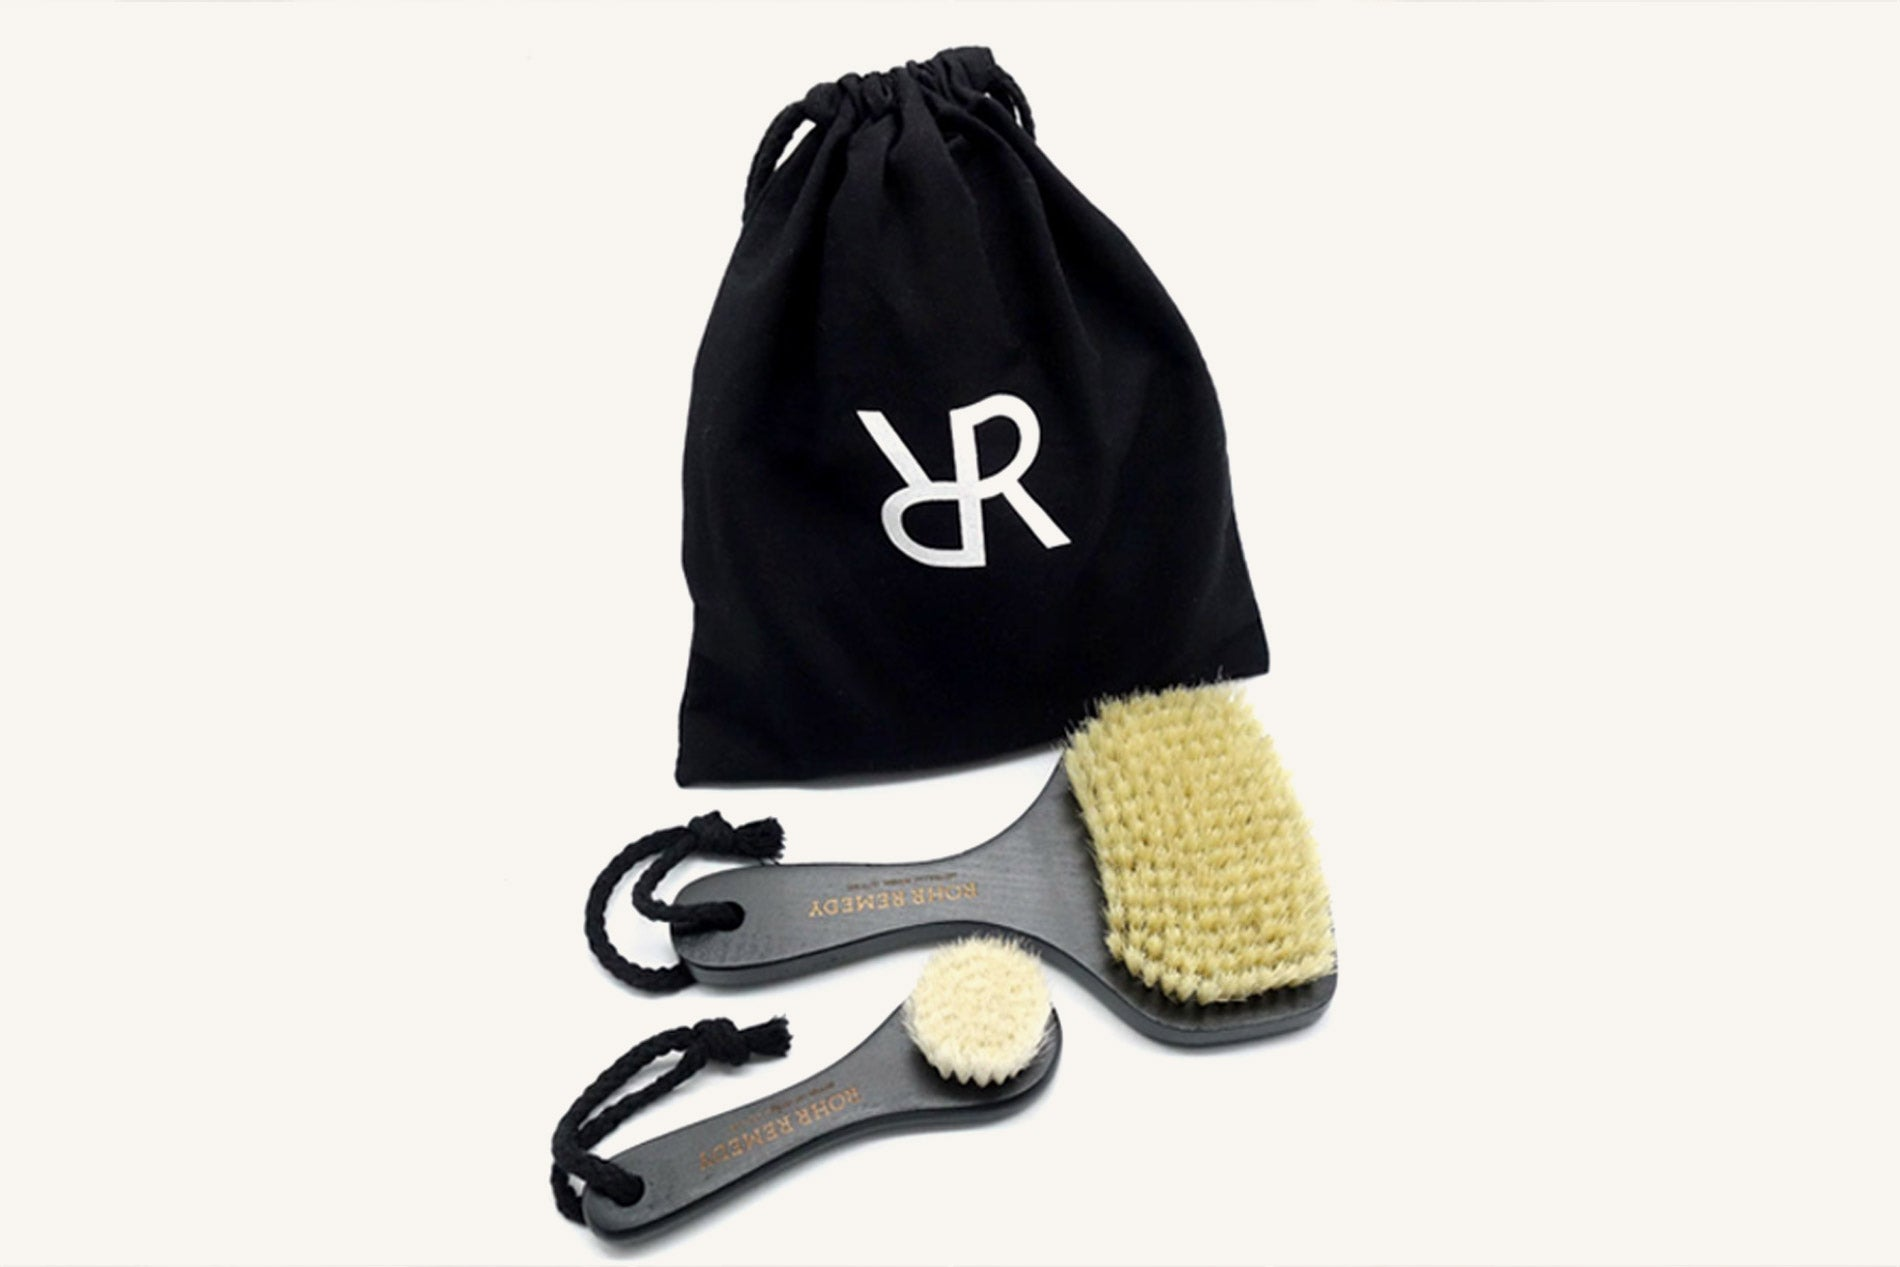 Rohr Remedy Beauty Routine Body Face Brush